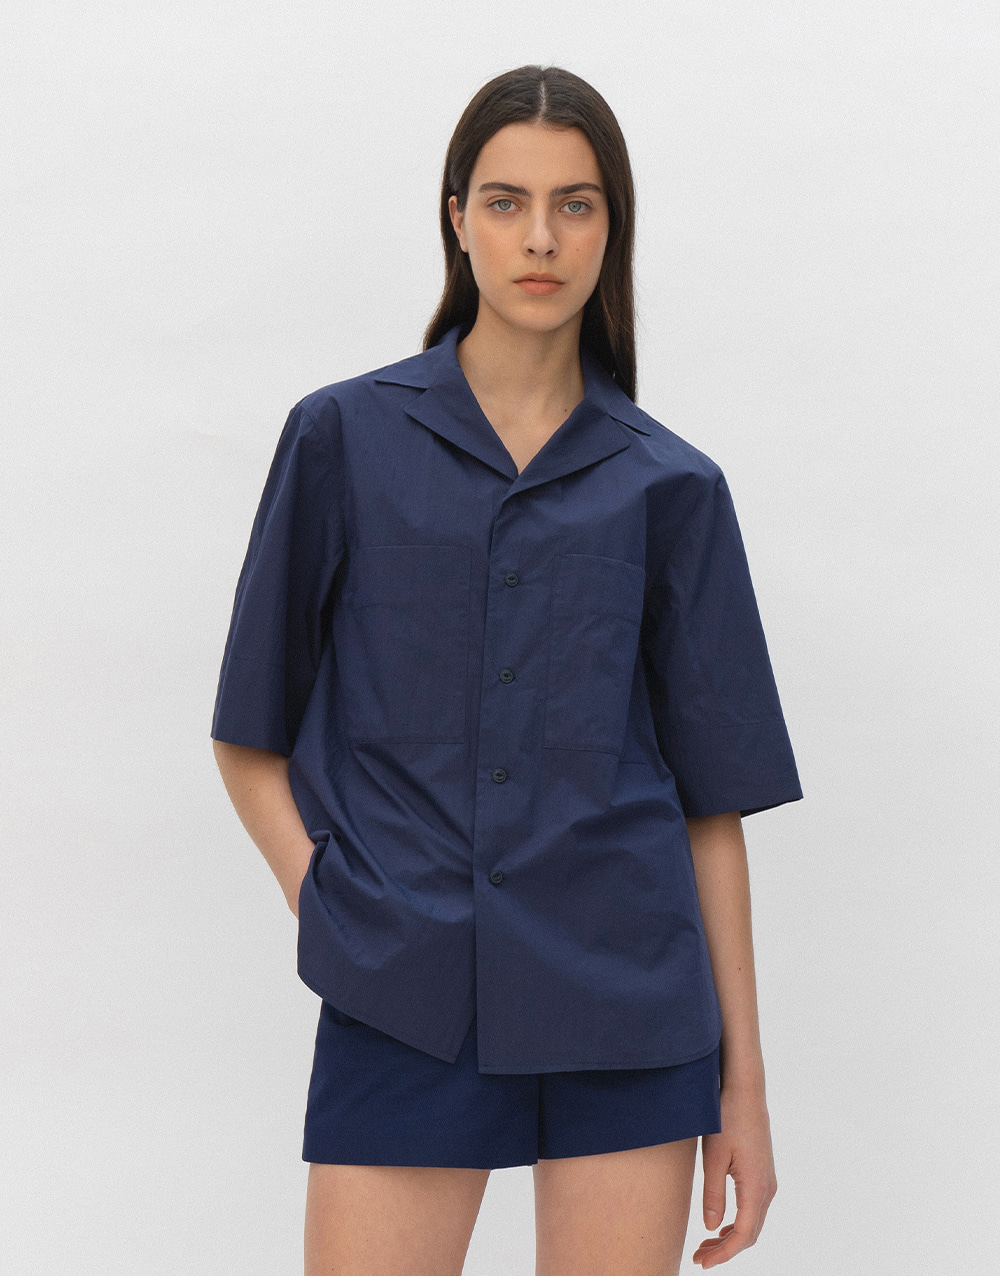 GBH APPAREL ADULT  Open Collar Shirts NAVY